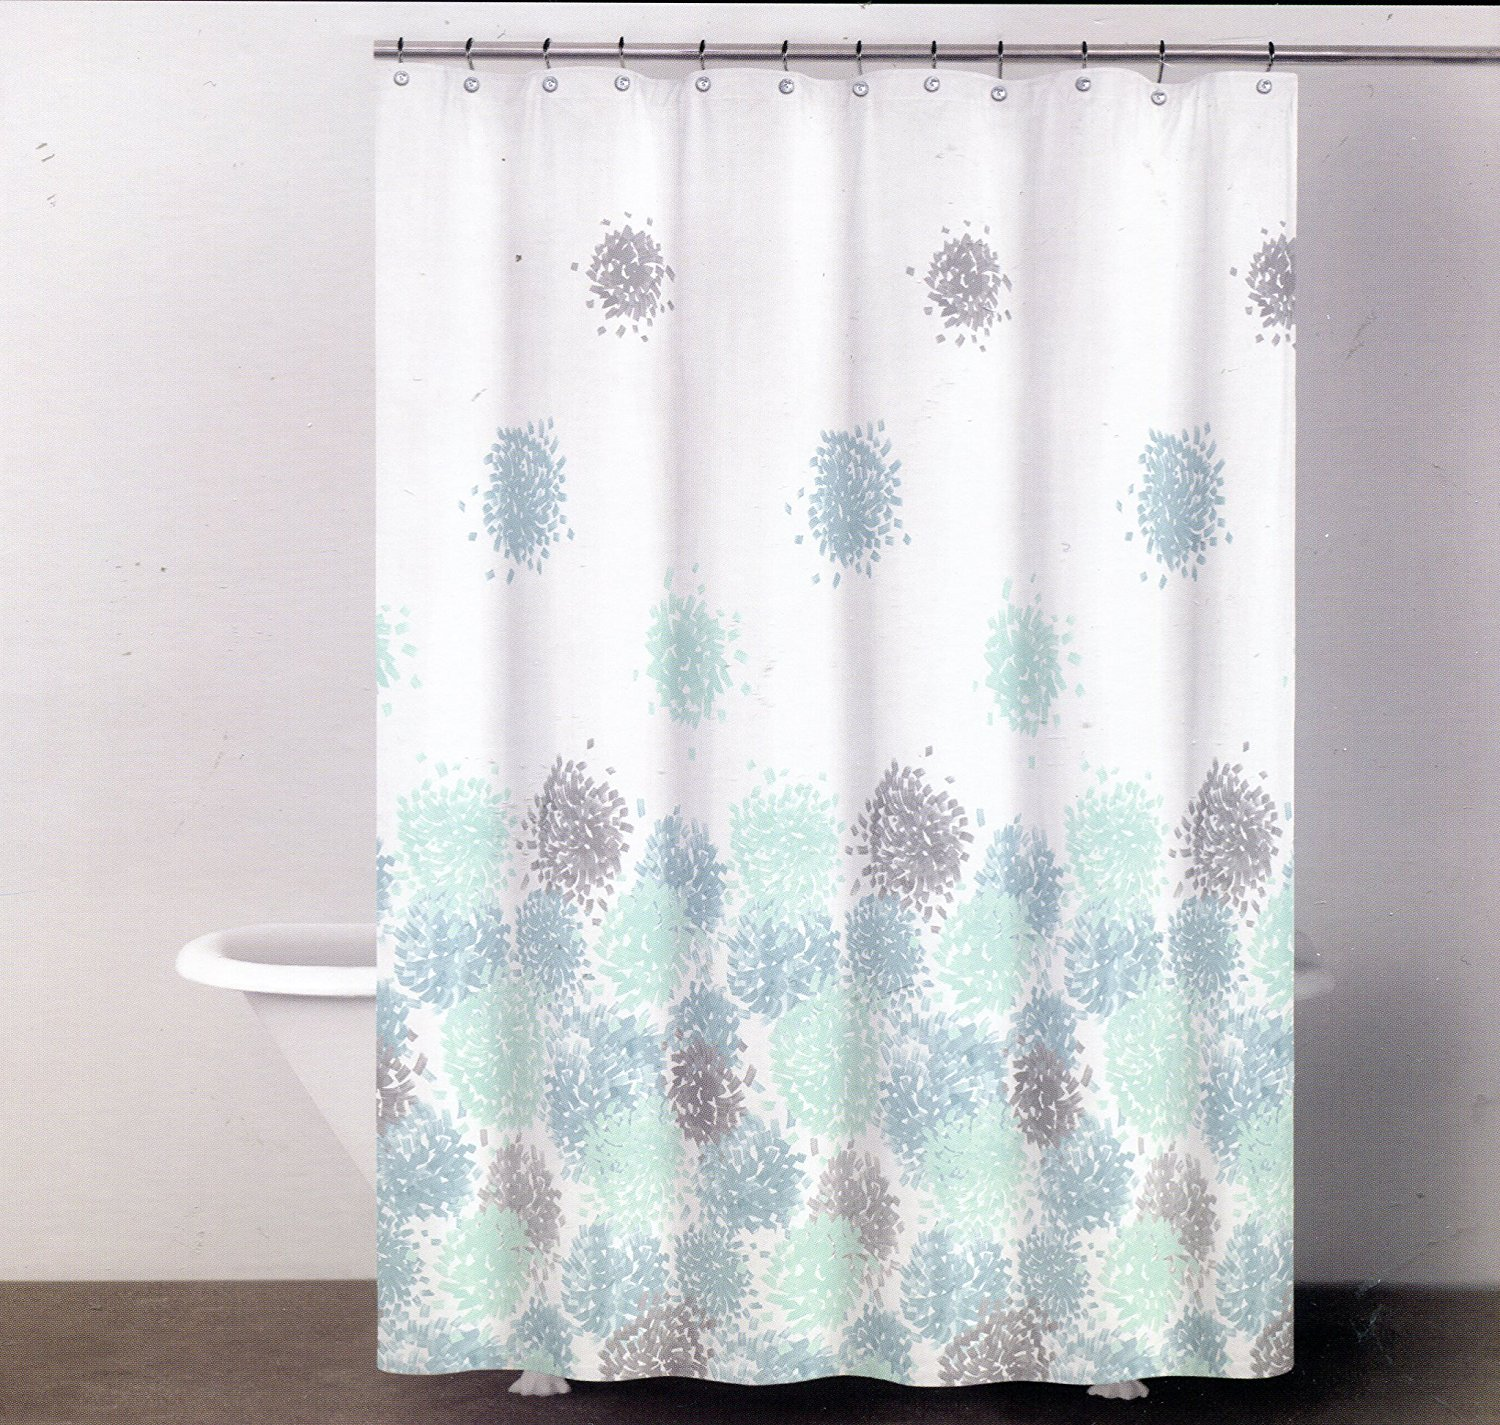 Beautiful Bathroom Decor Ideas with Floral Shower Curtain: Floral Shower Curtain | Orange Brown Shower Curtain | Mint Shower Curtain